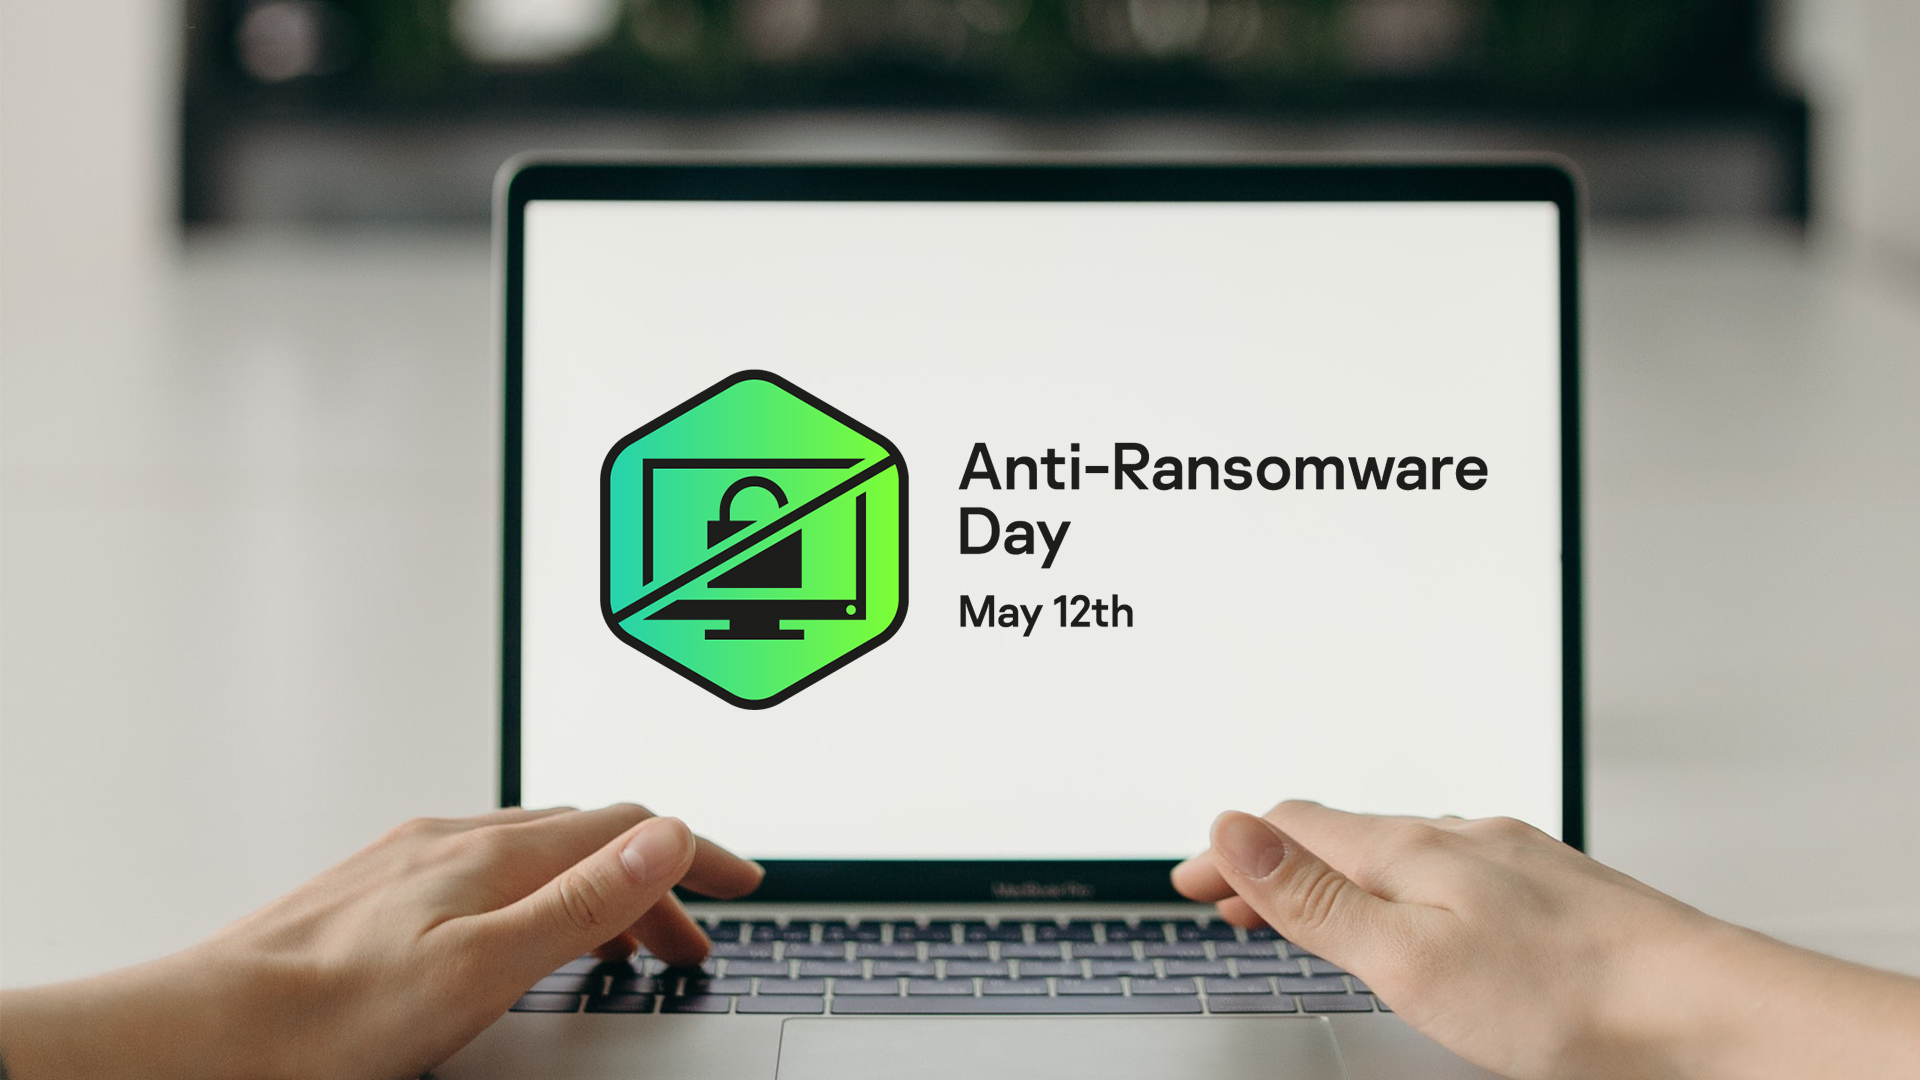 Anti-Ransomware Day, fuel pipelines and water utilities